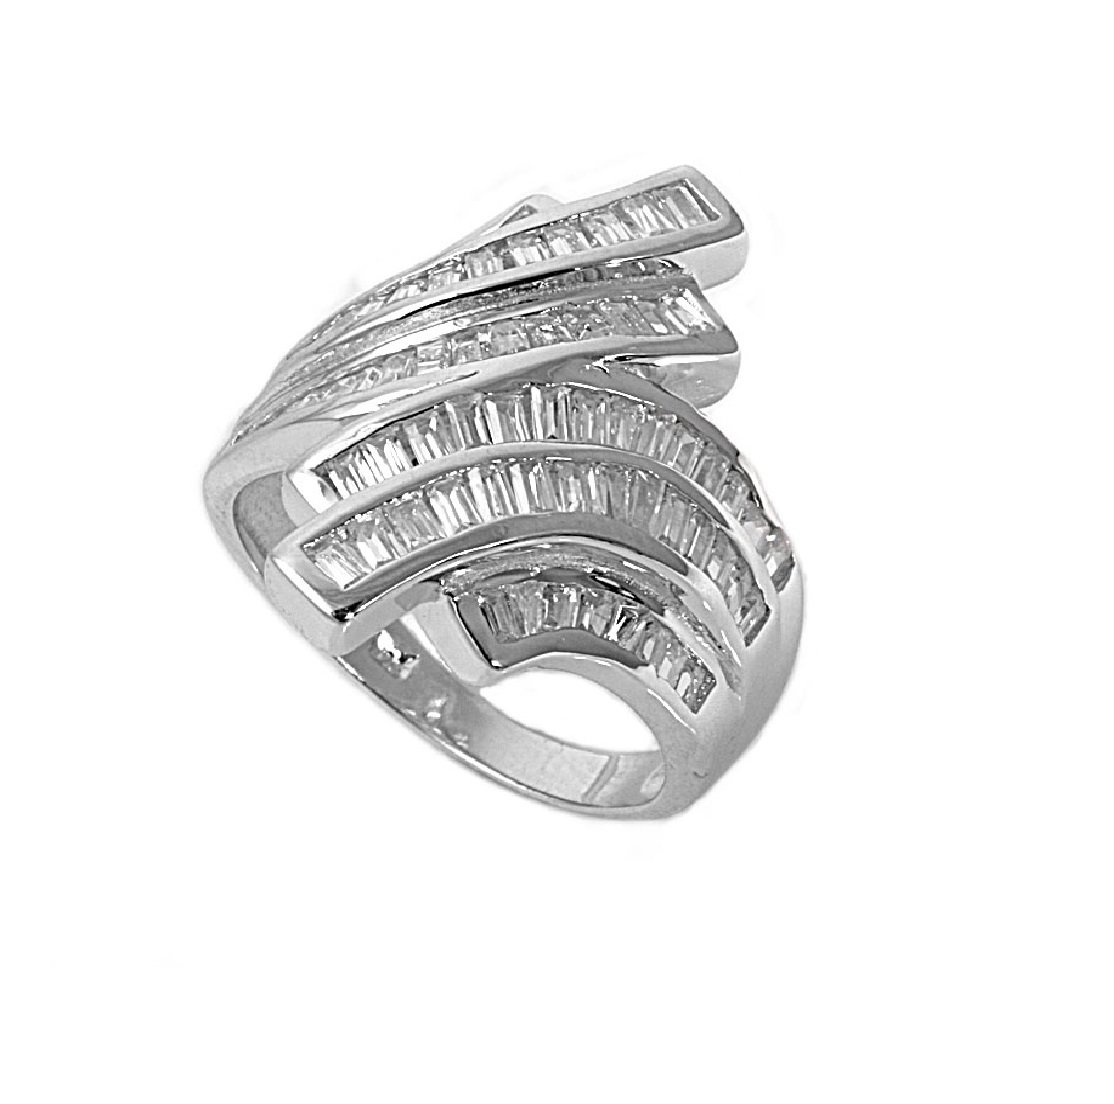 Baguette Rows Designer Cubic Zirconia Ring 925 Sterling Silver Size 7